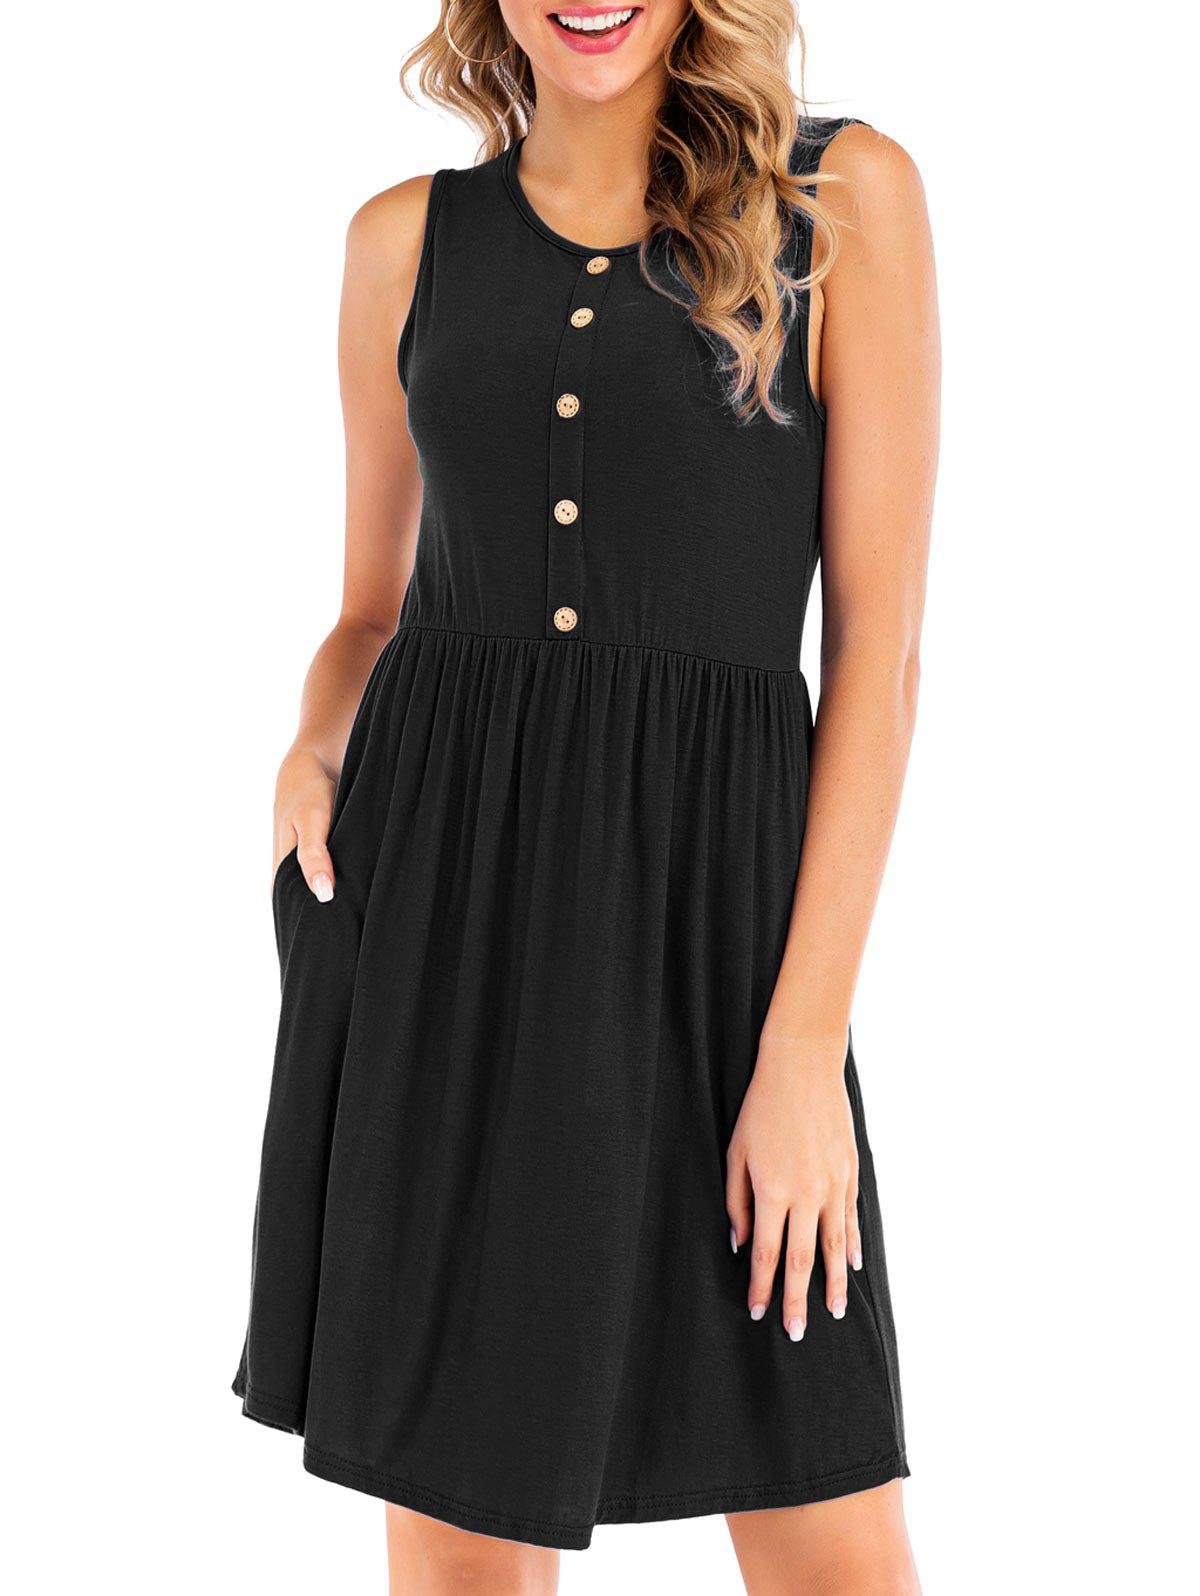 Fancy Button Embellished Sleeveless Dress